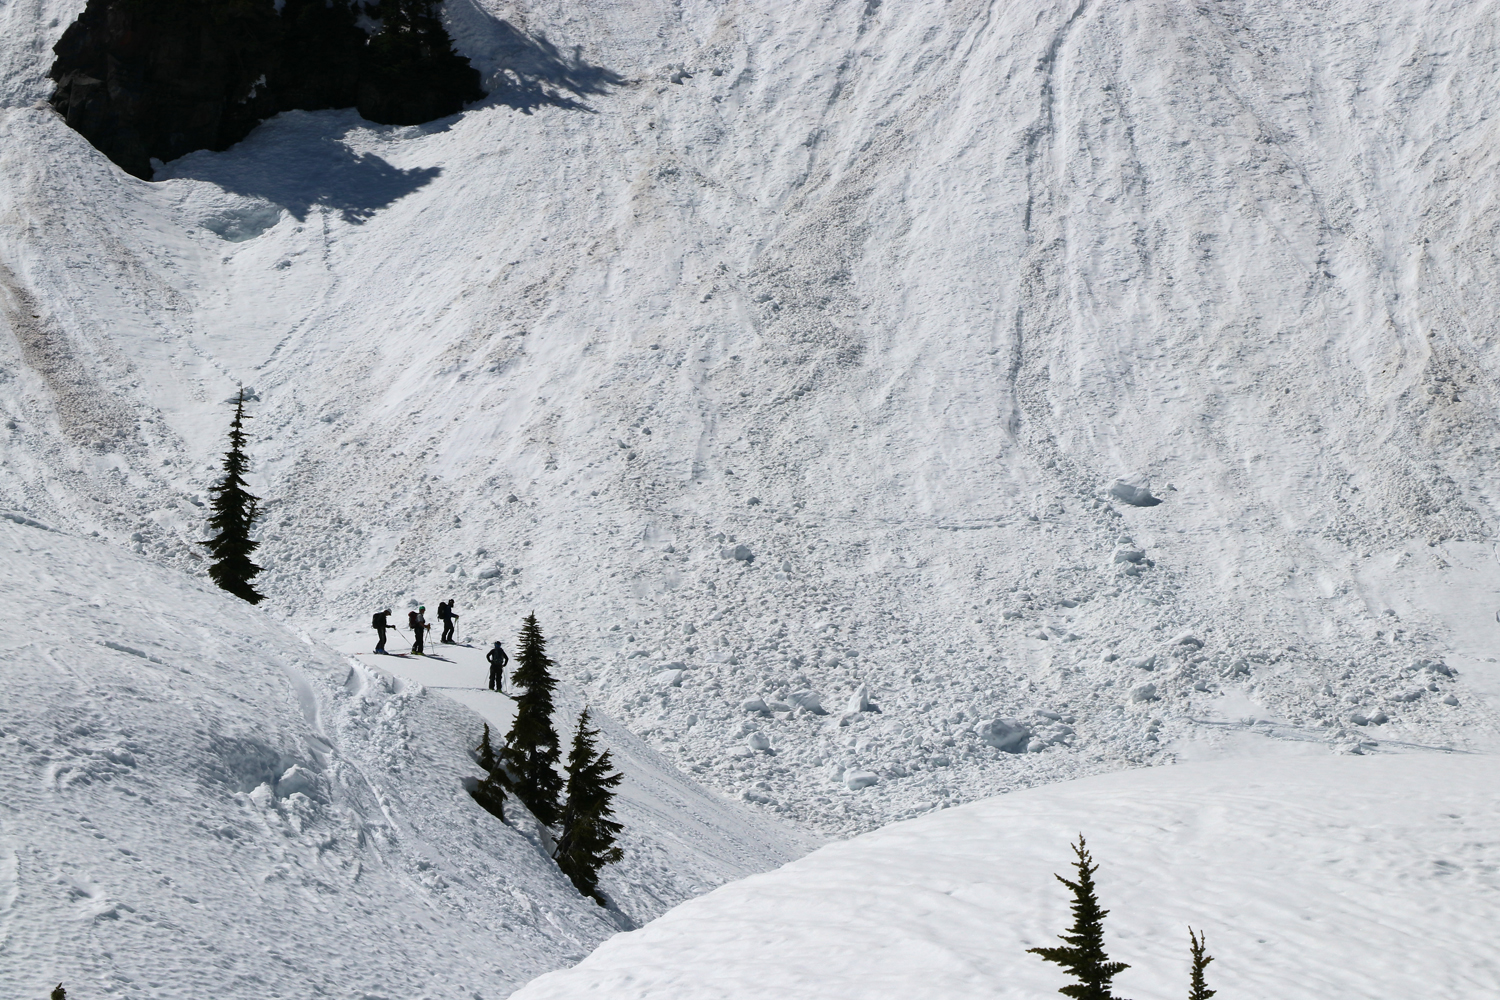 Alpental Pro Patrol checking spring avalanche conditions.